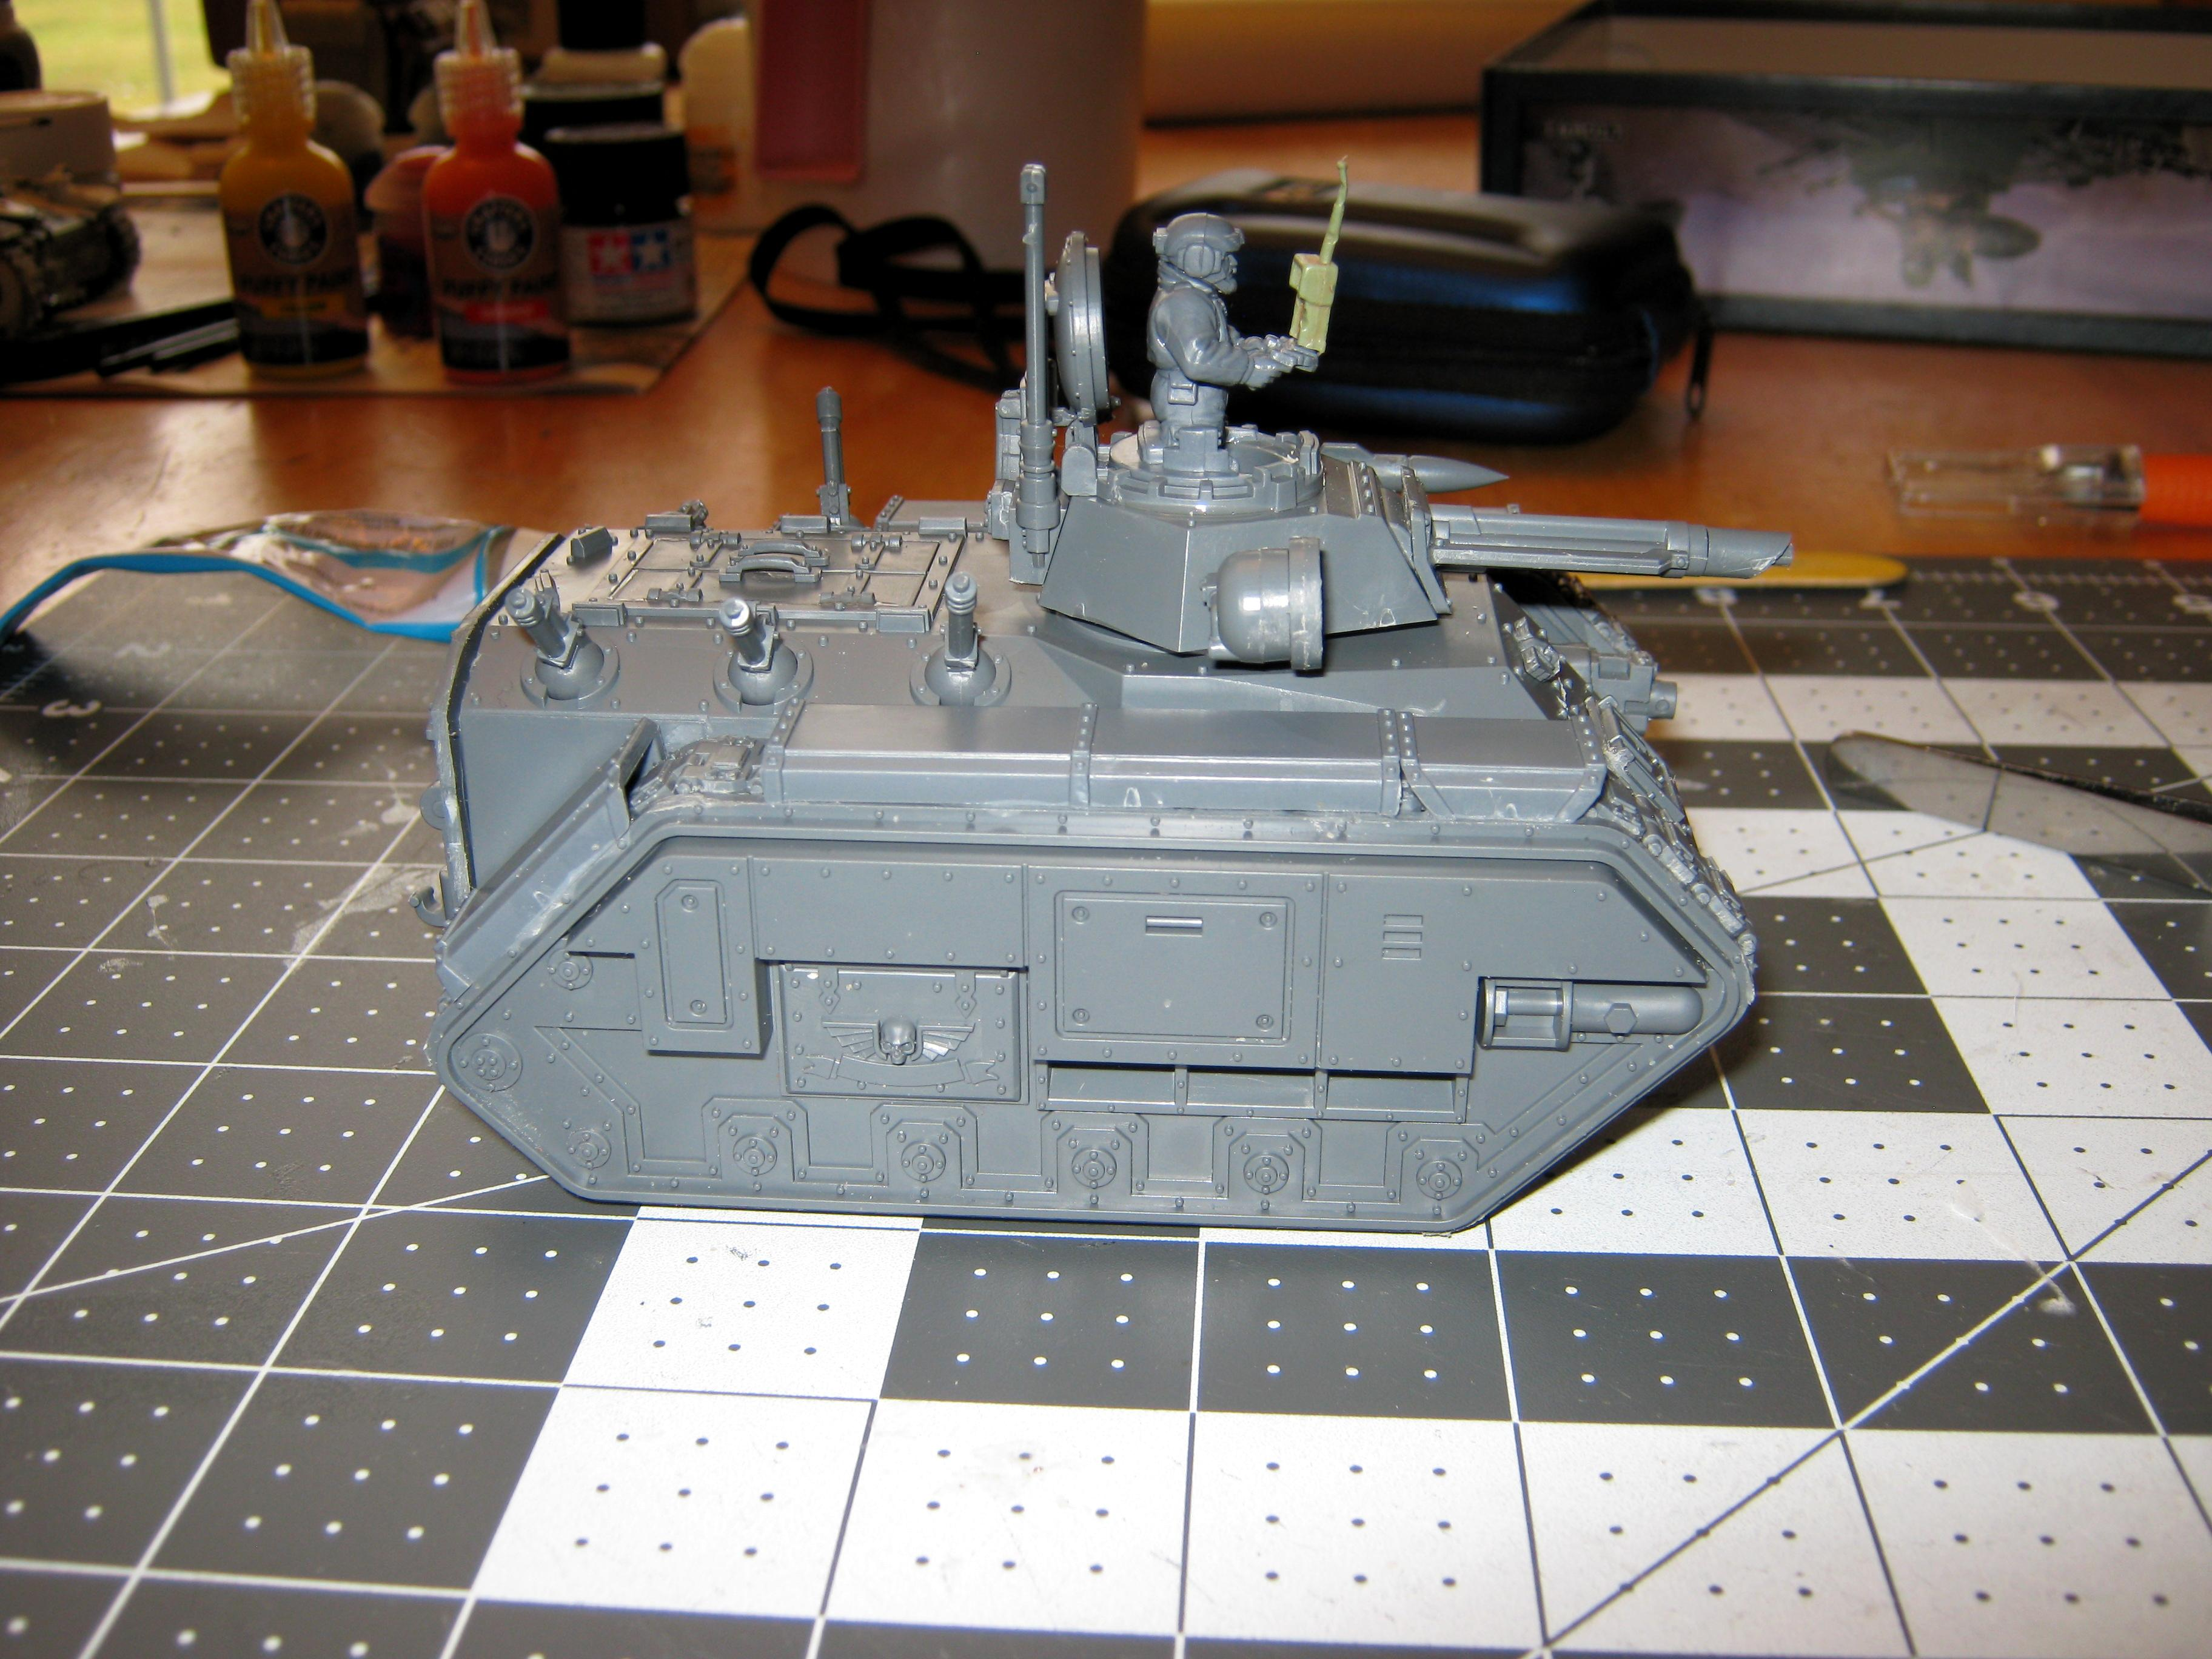 Apc, Armored Personnel Carrier, Astra Militarum, Chimera, Conversion, Ifv, Imperial, Imperial Guard, Infantry Fighting Vehicle, Transport